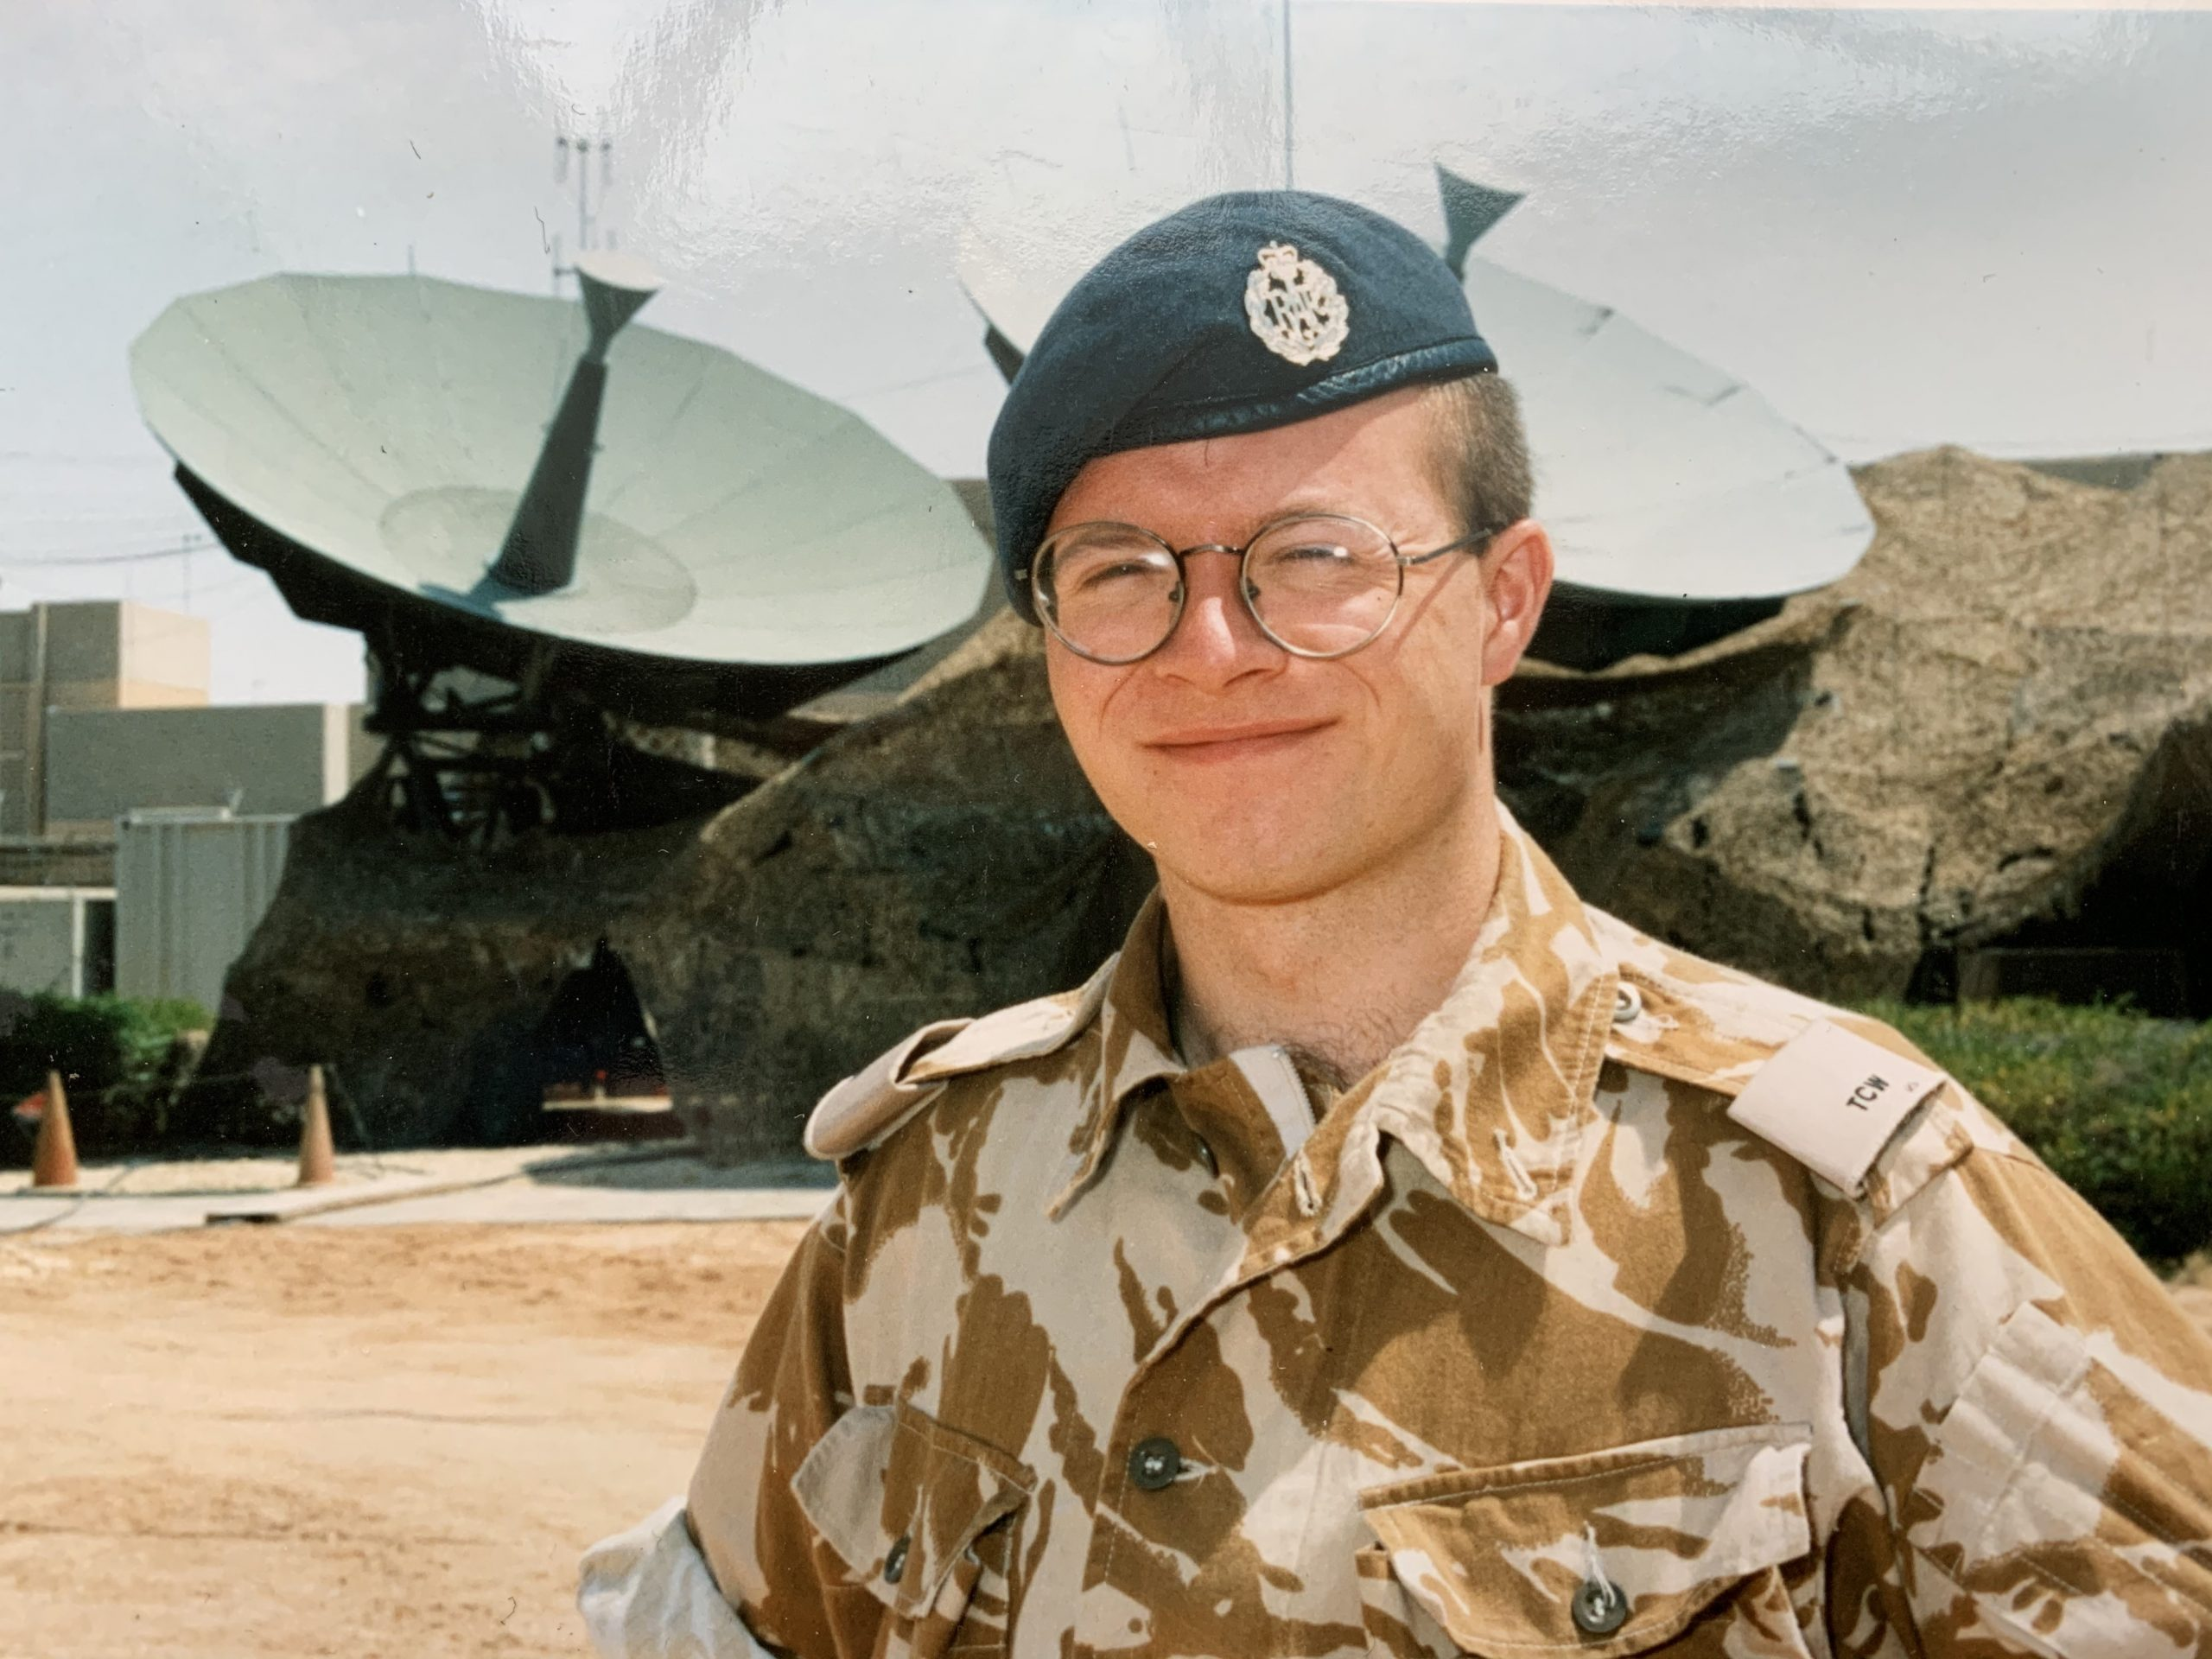 Mat in his Royal Airforce uniform.